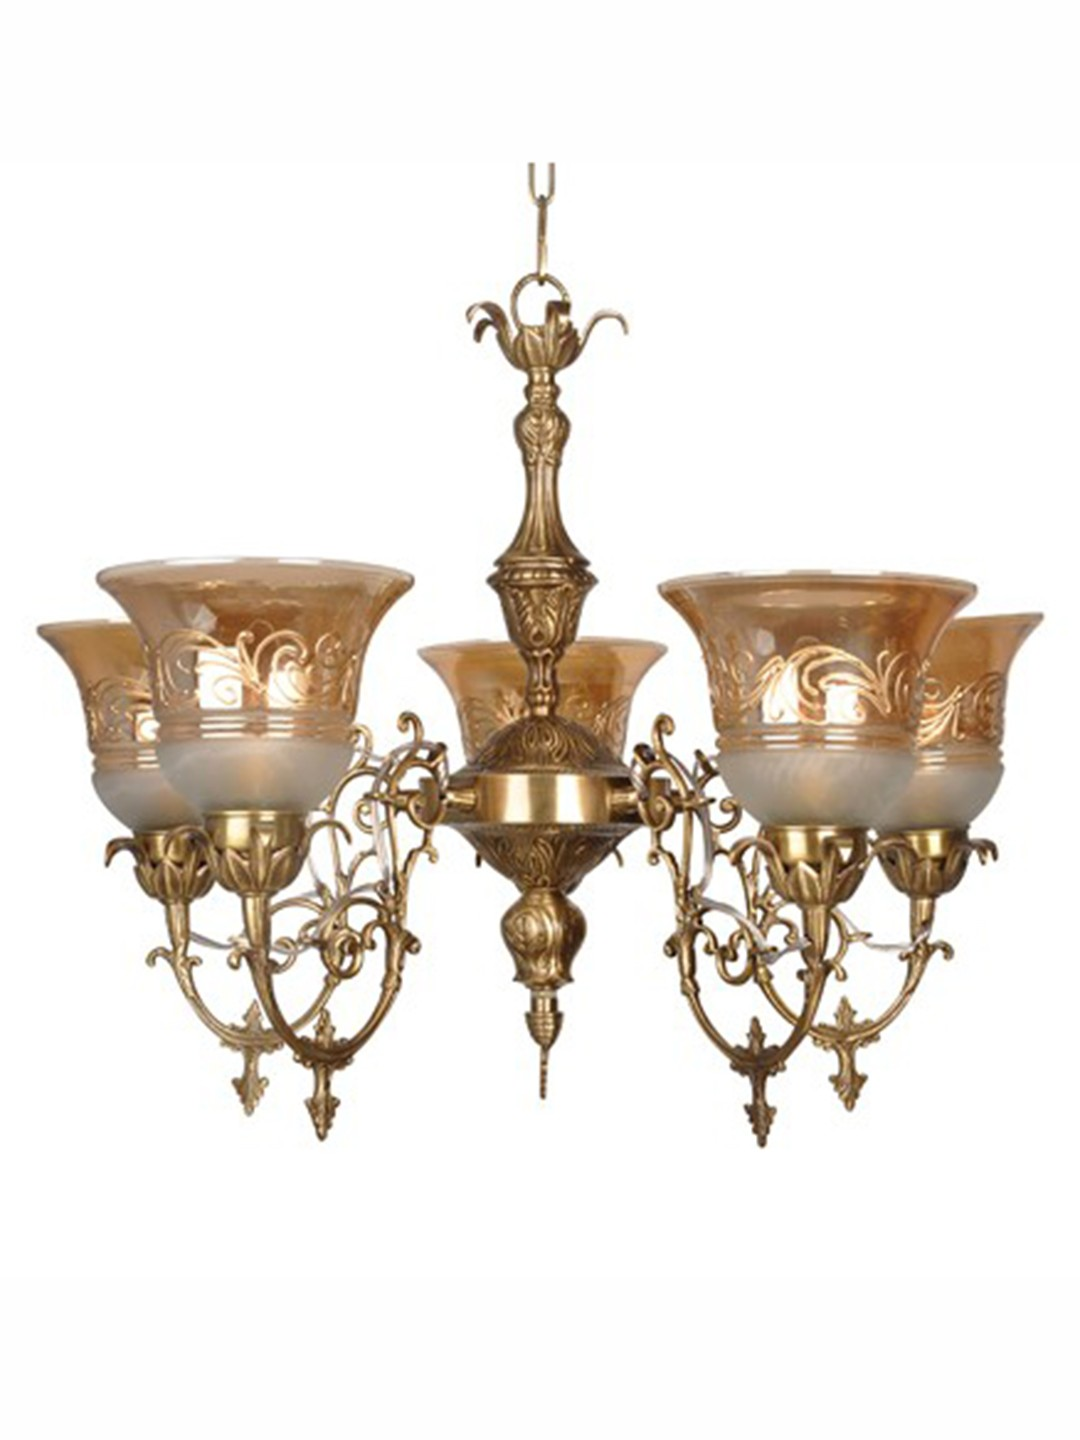 Ornate Cast Brass 5 Light Lustrous Chandelier